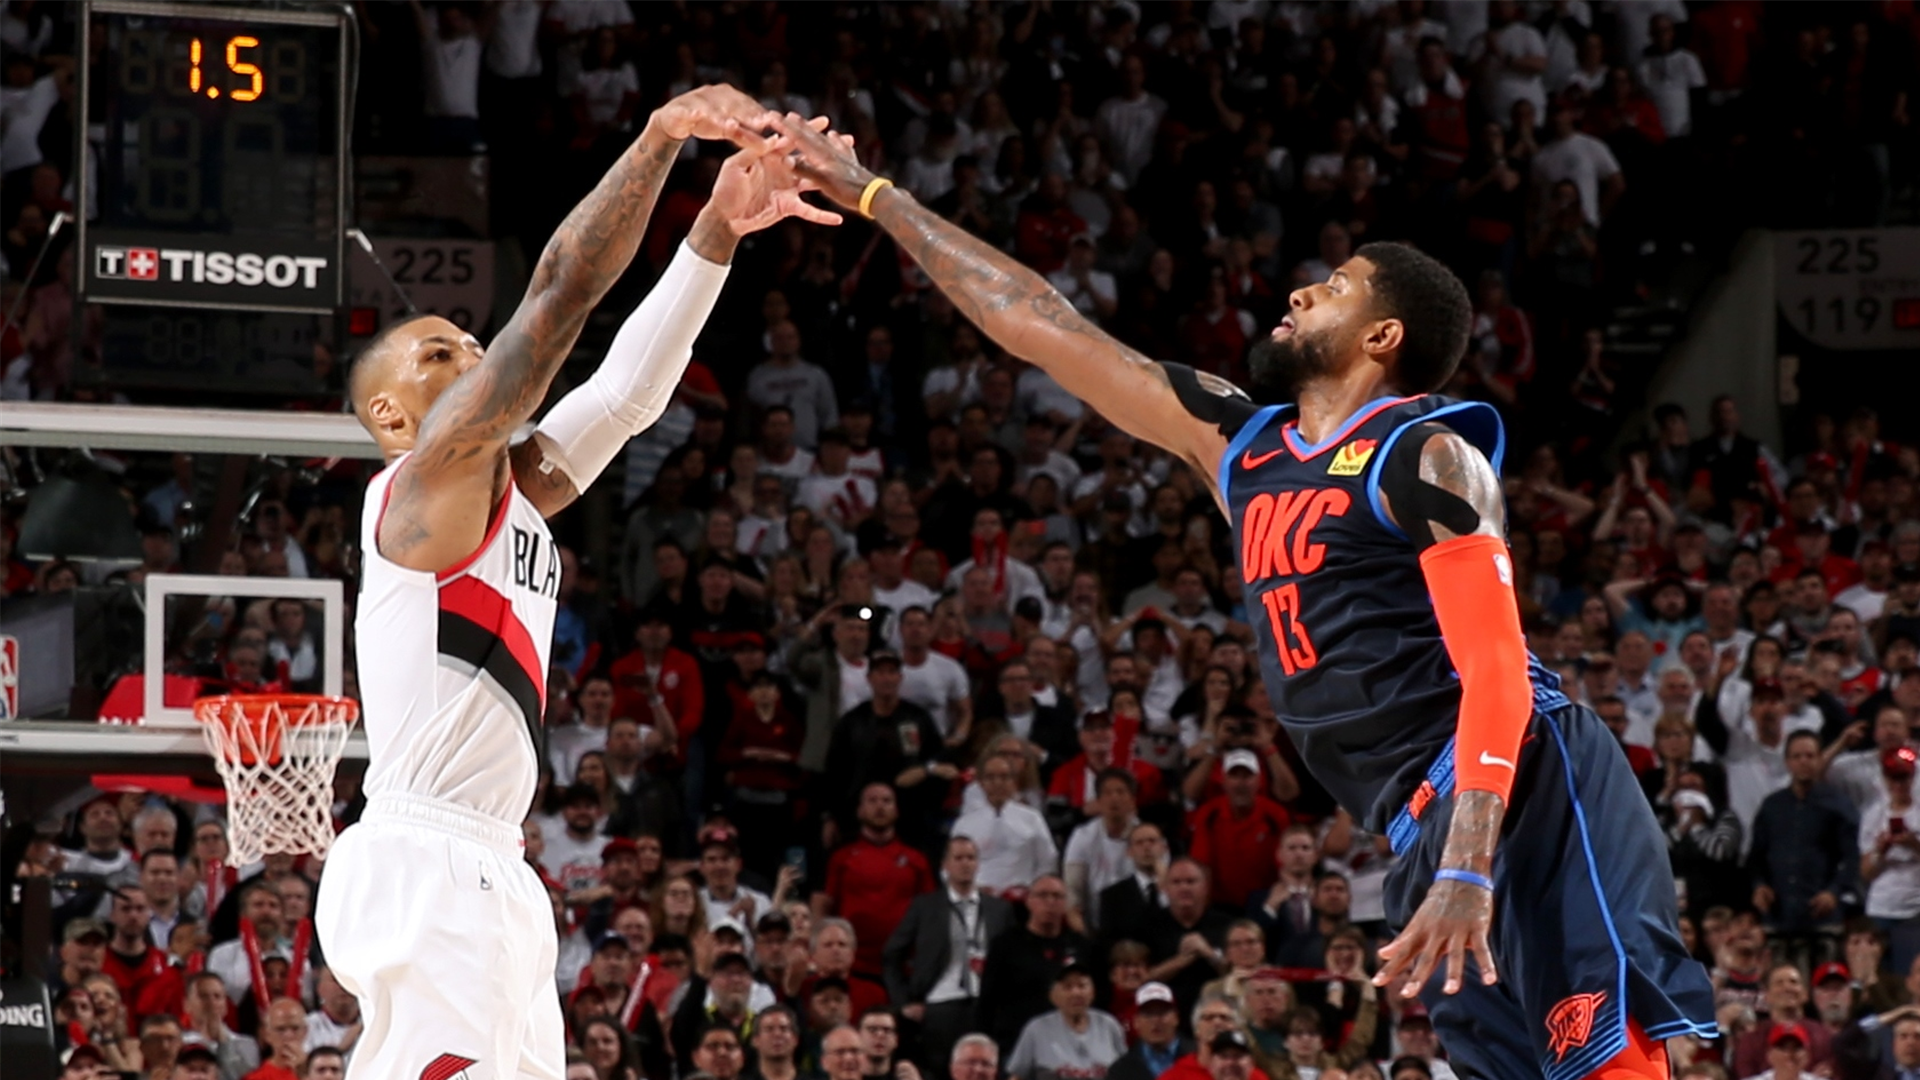 Nba Playoffs 2019 Paul George Says It Was His Night On Damian Lillard S 50 Point Game That Was Capped Off By A Game Winner Nba Com India The Official Site Of The Nba